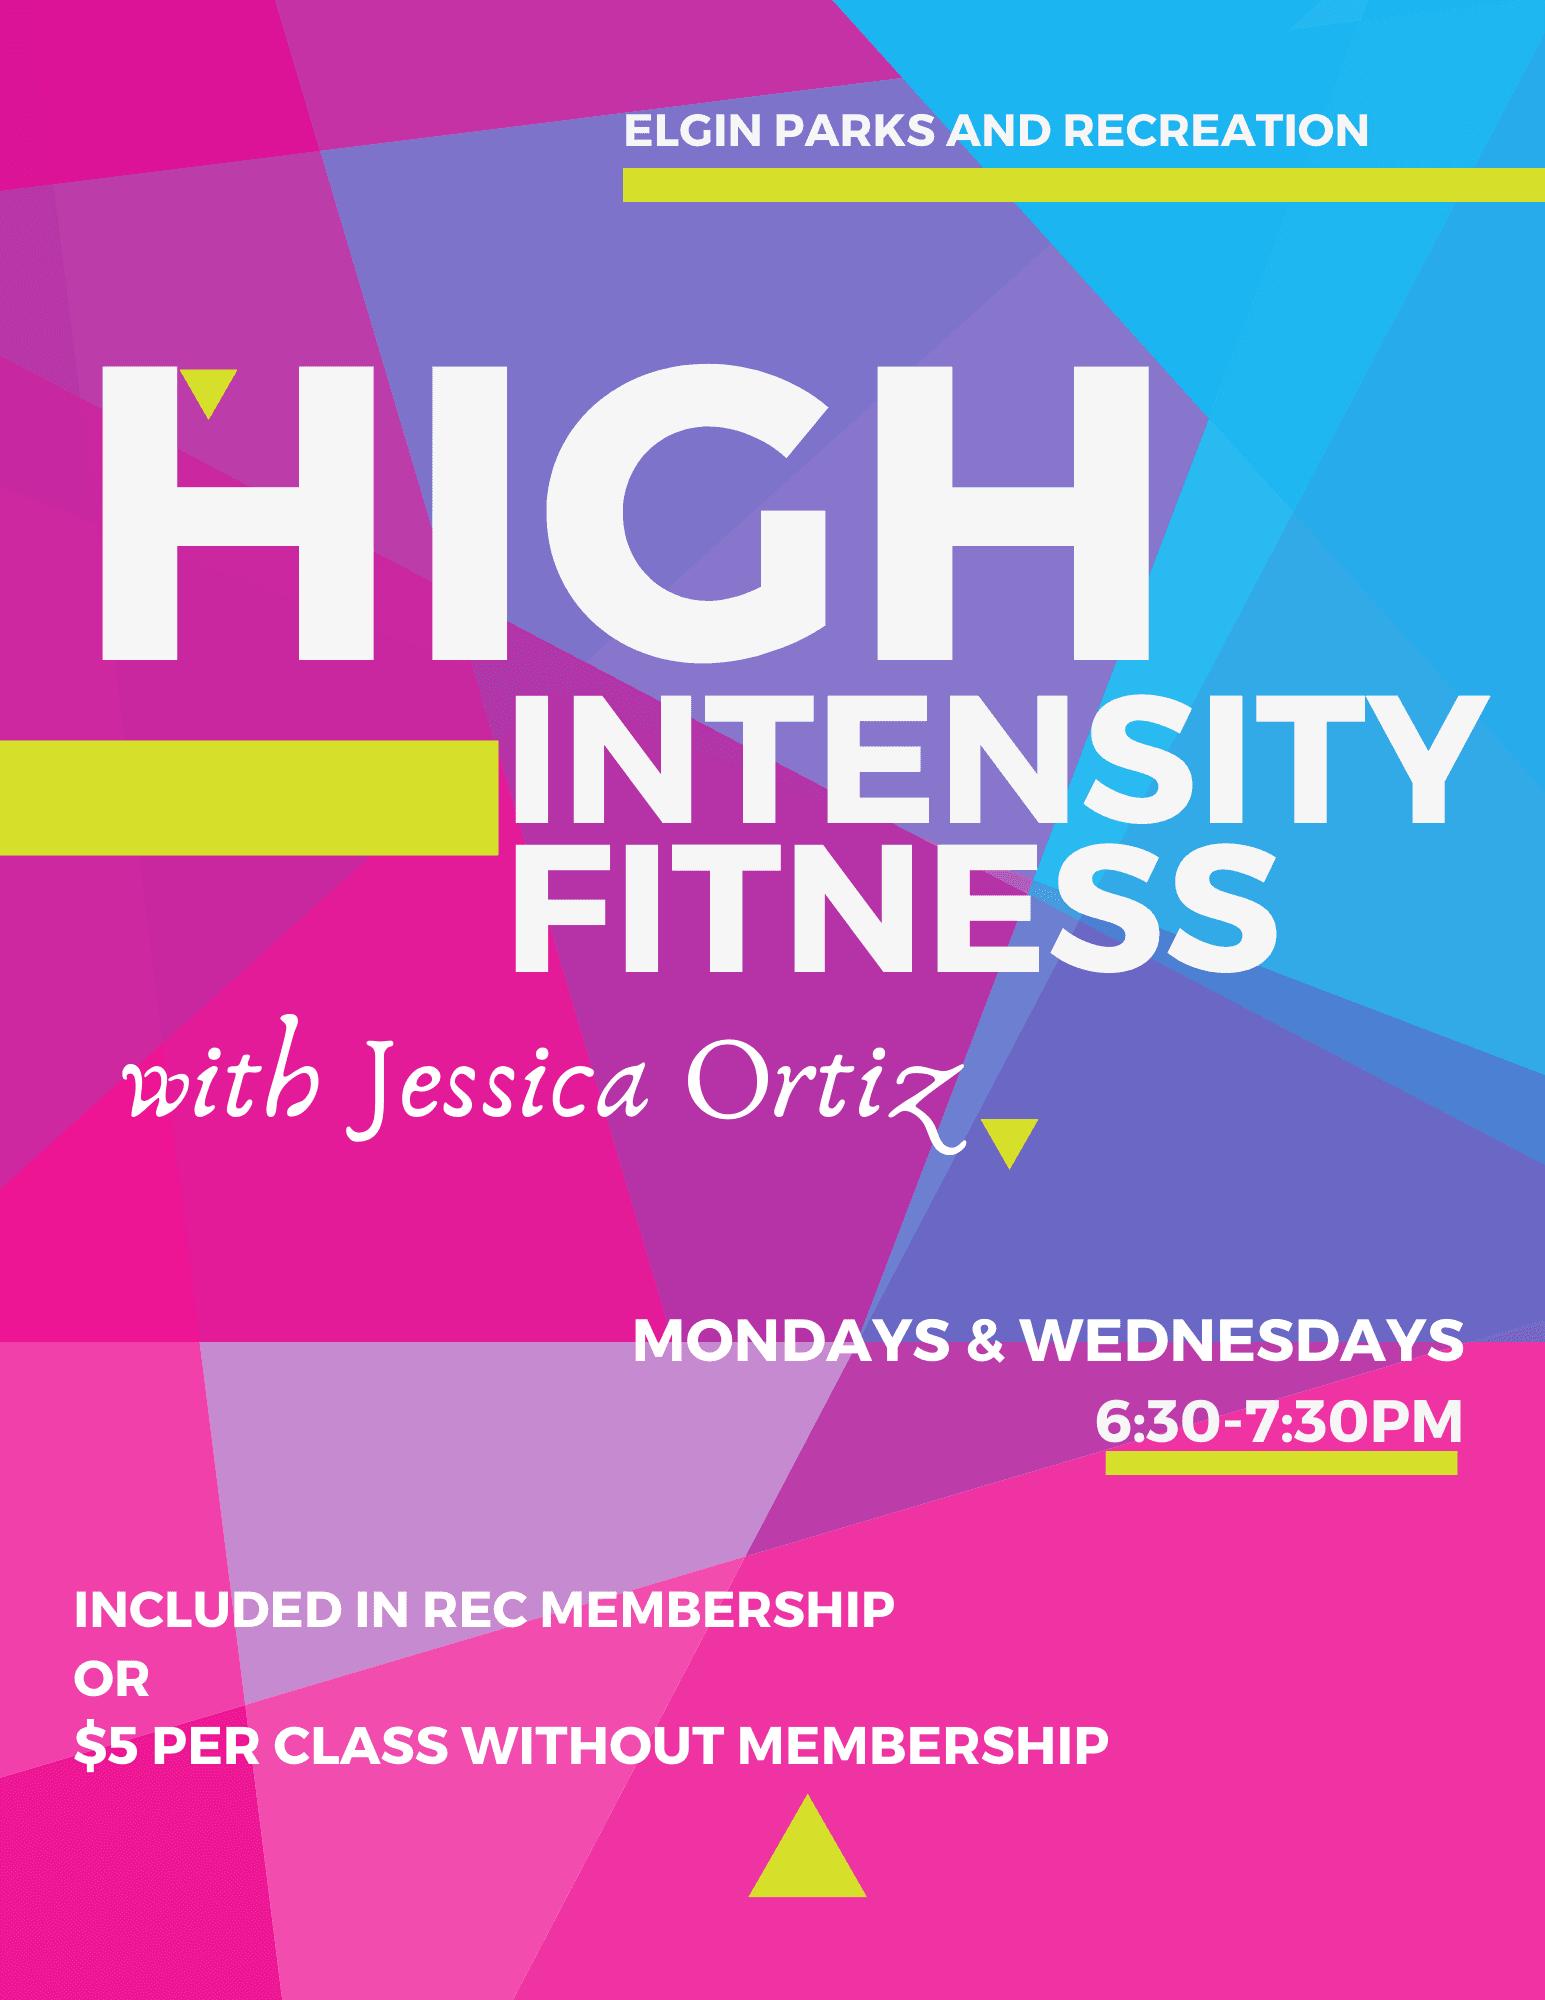 HIIT Class Poster - Mondays and Wednesdays